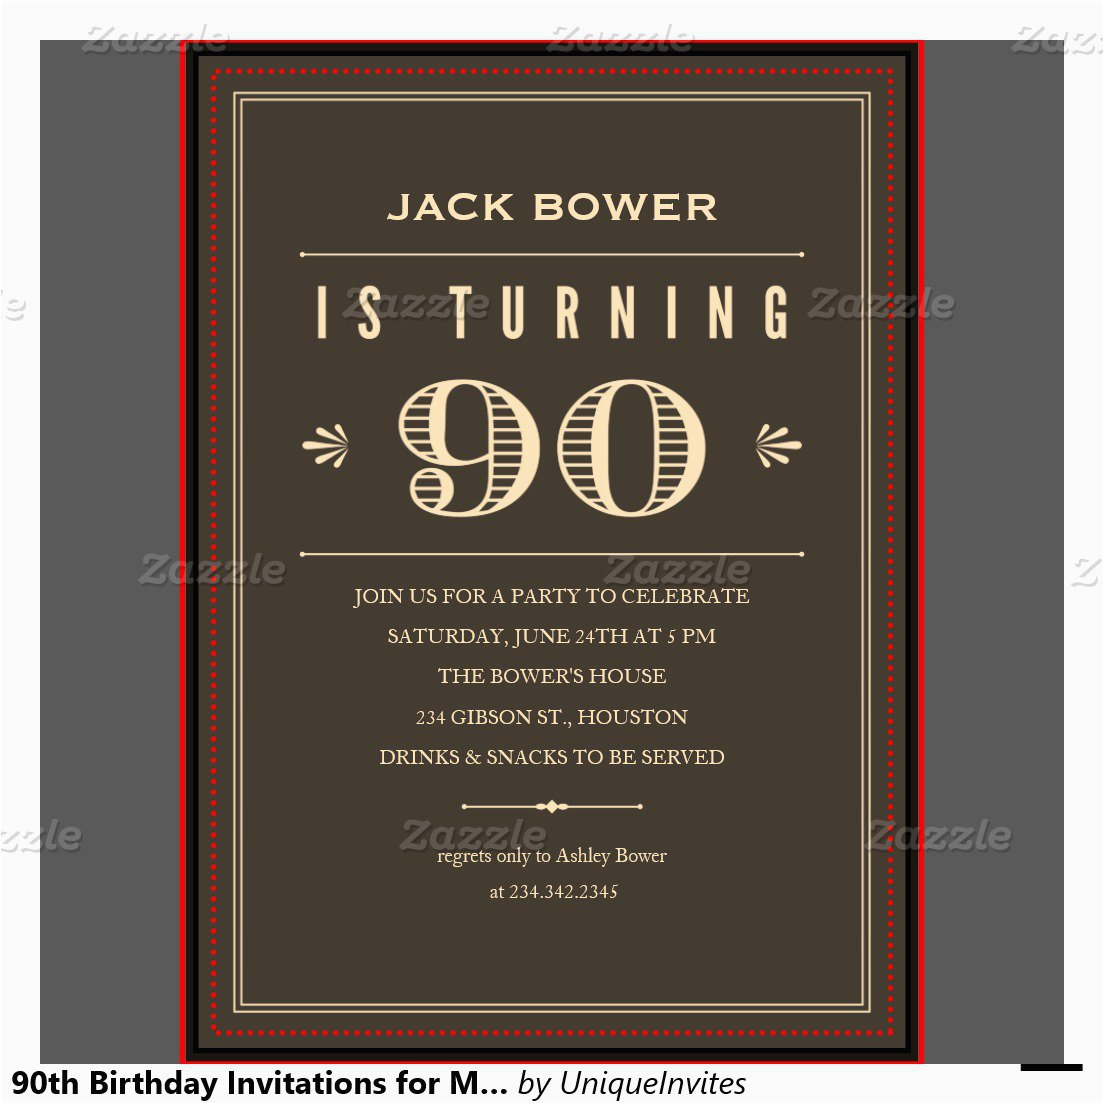 90th Birthday Invitations Free Best Party Ideas